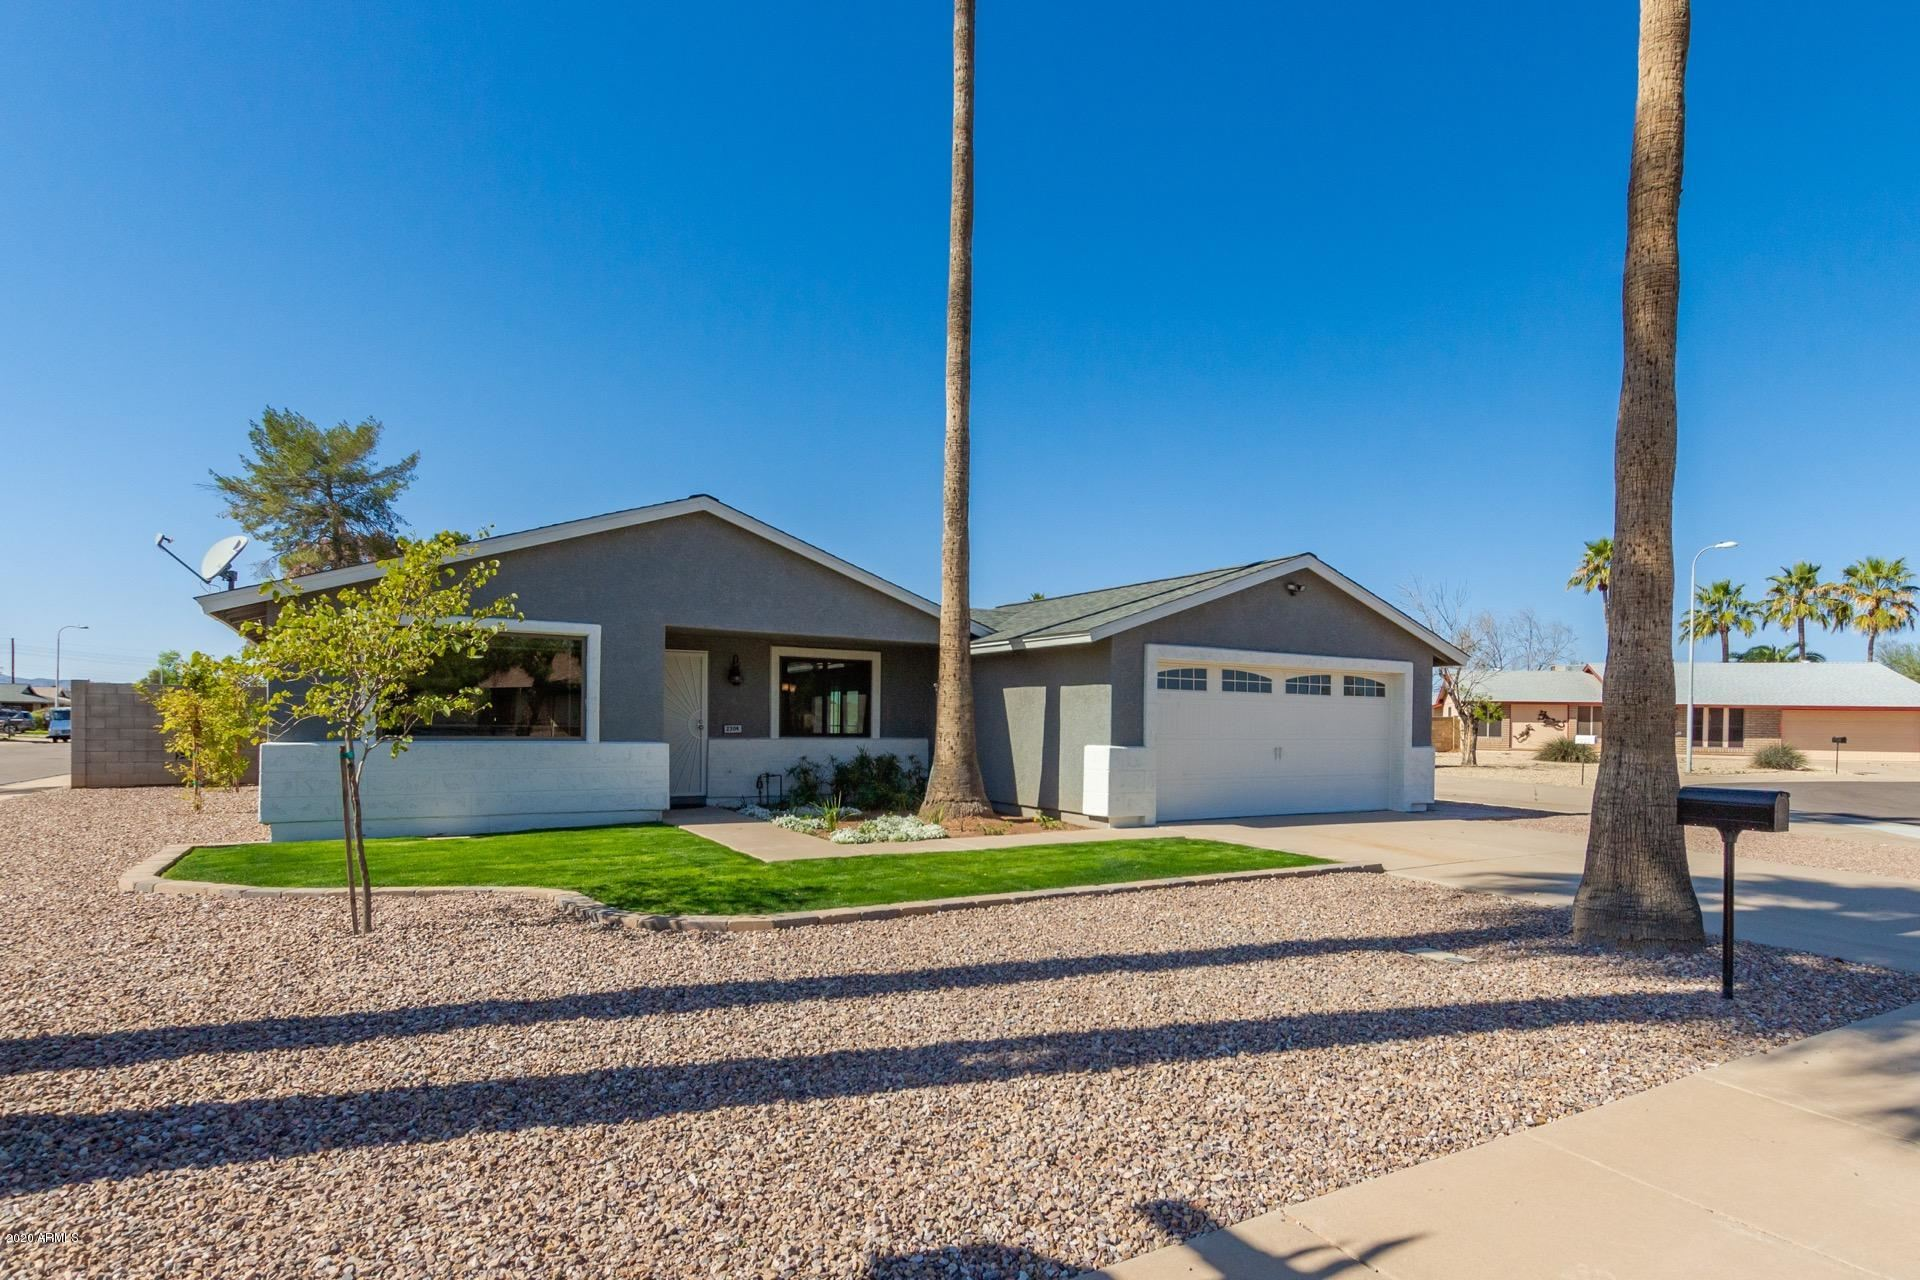 2304 N KACHINA Court, Chandler, AZ 85224 - #: 6042287